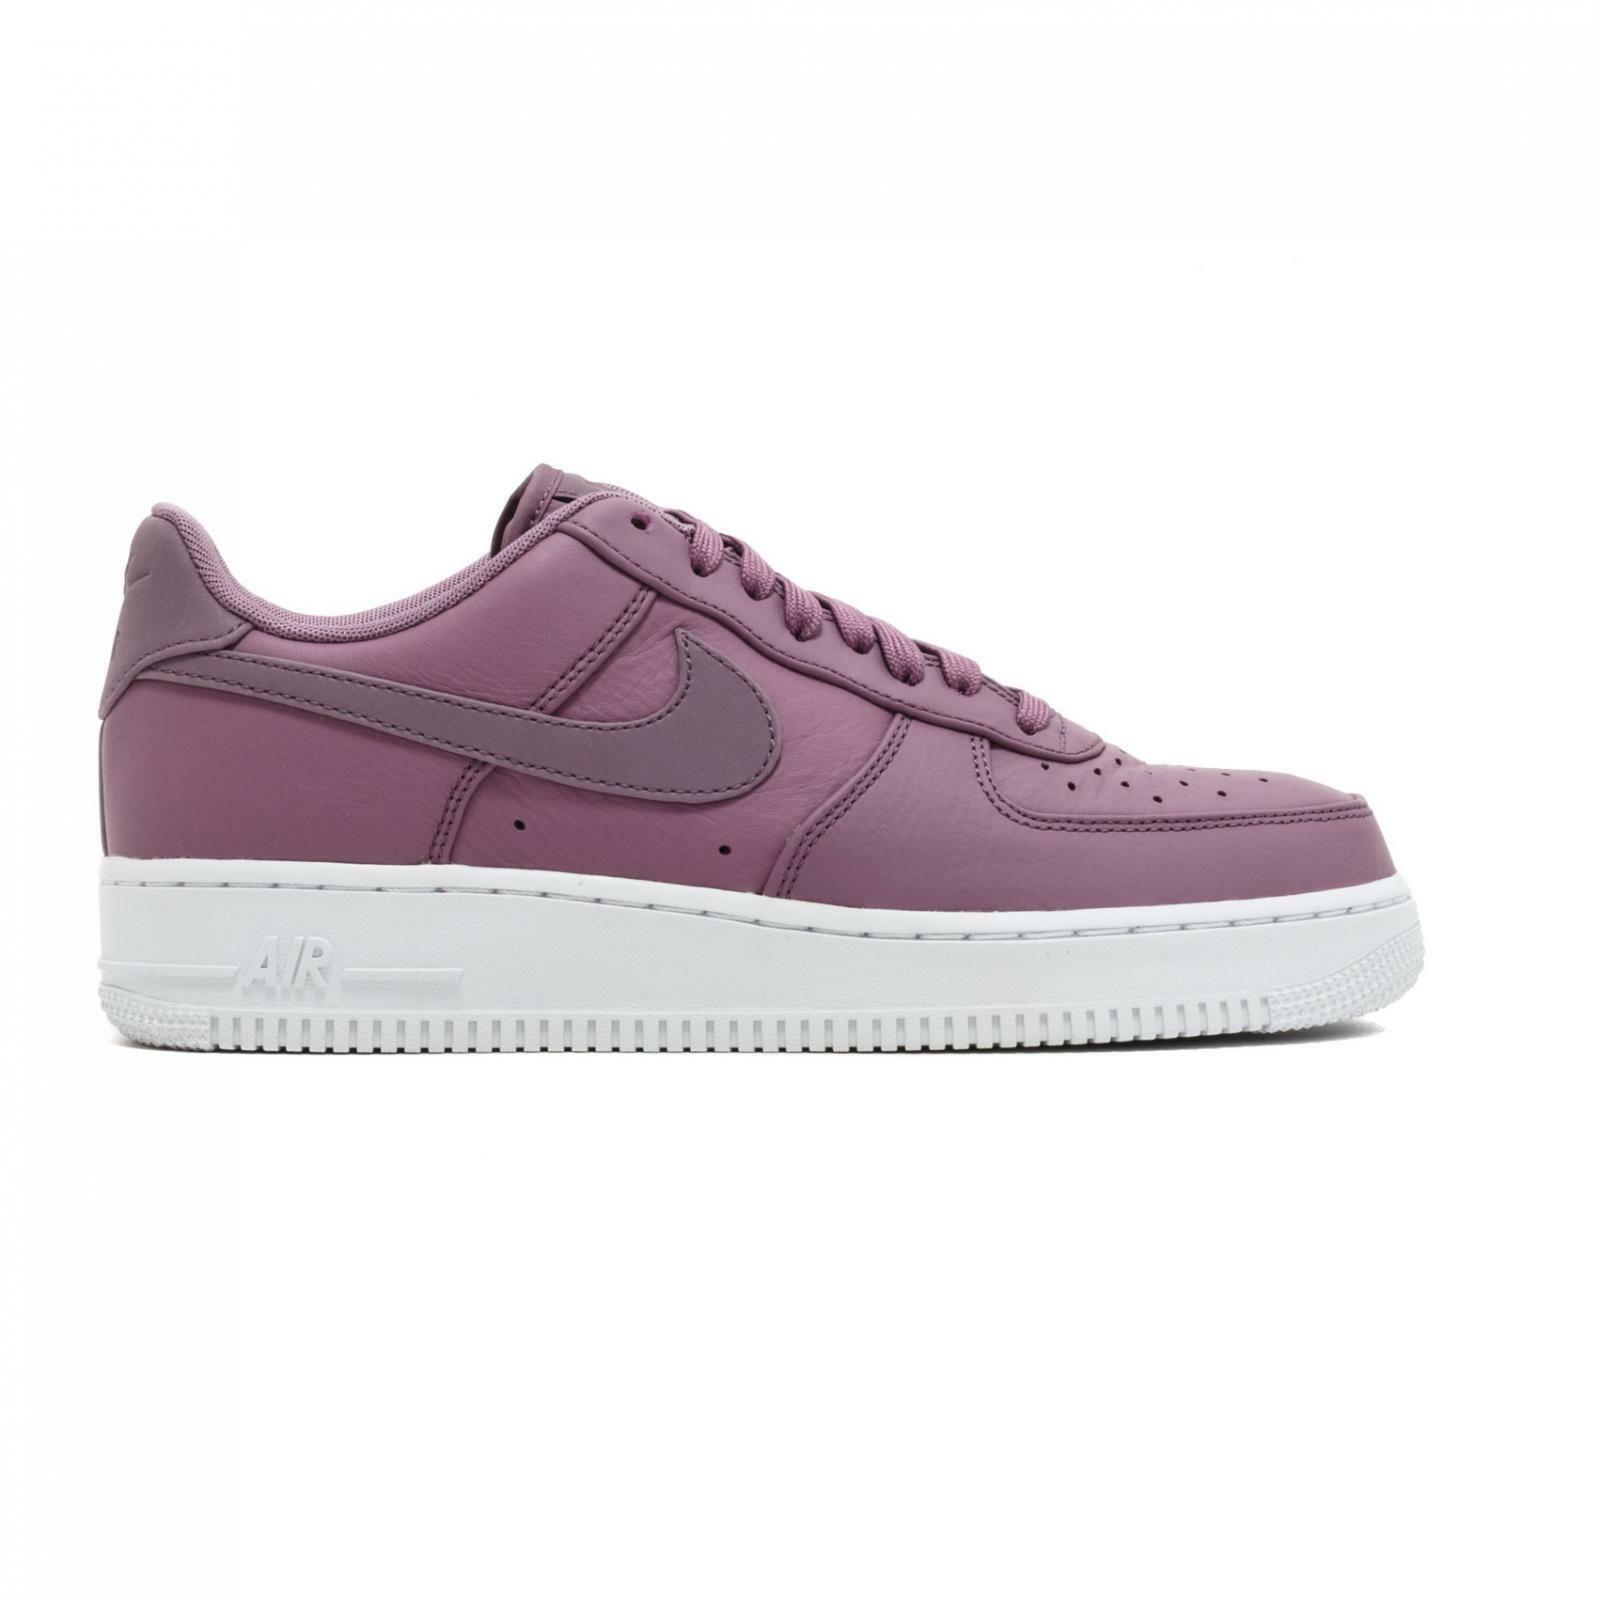 Mens NIKE AIR FORCE 1 07 PREMIUM purple Trainers 905345 501